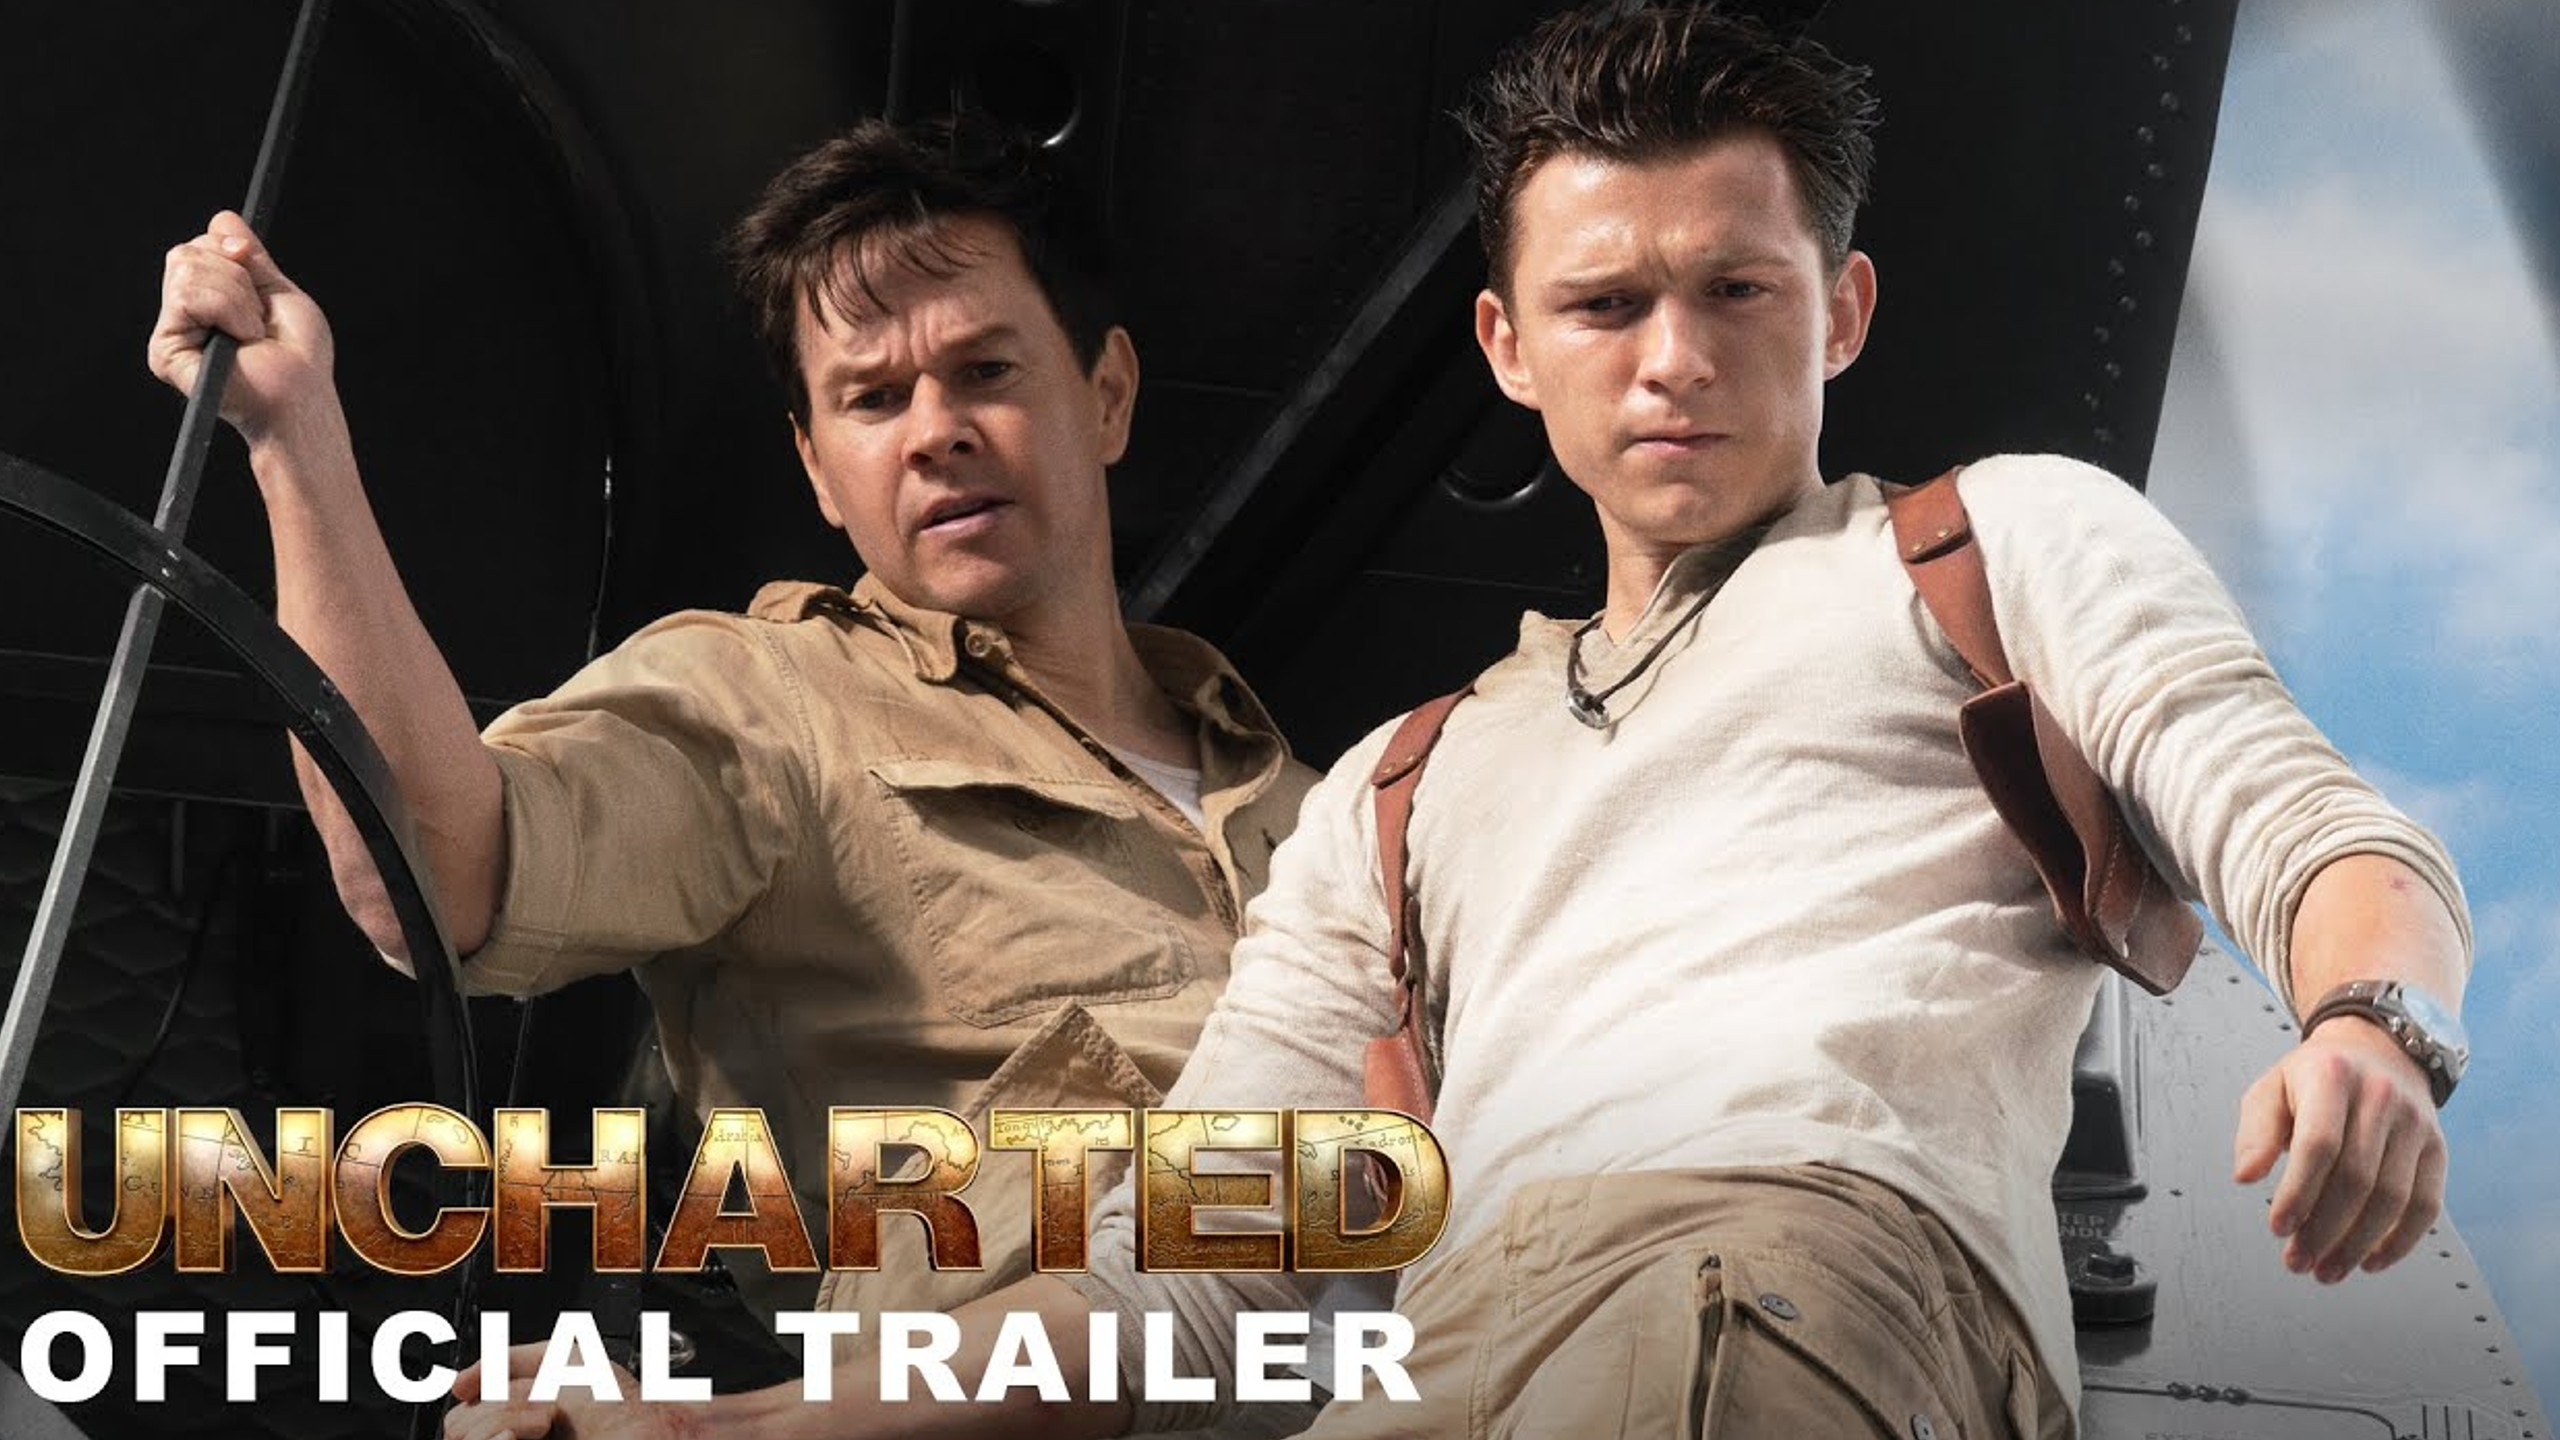 Uncharted Movie Trailer